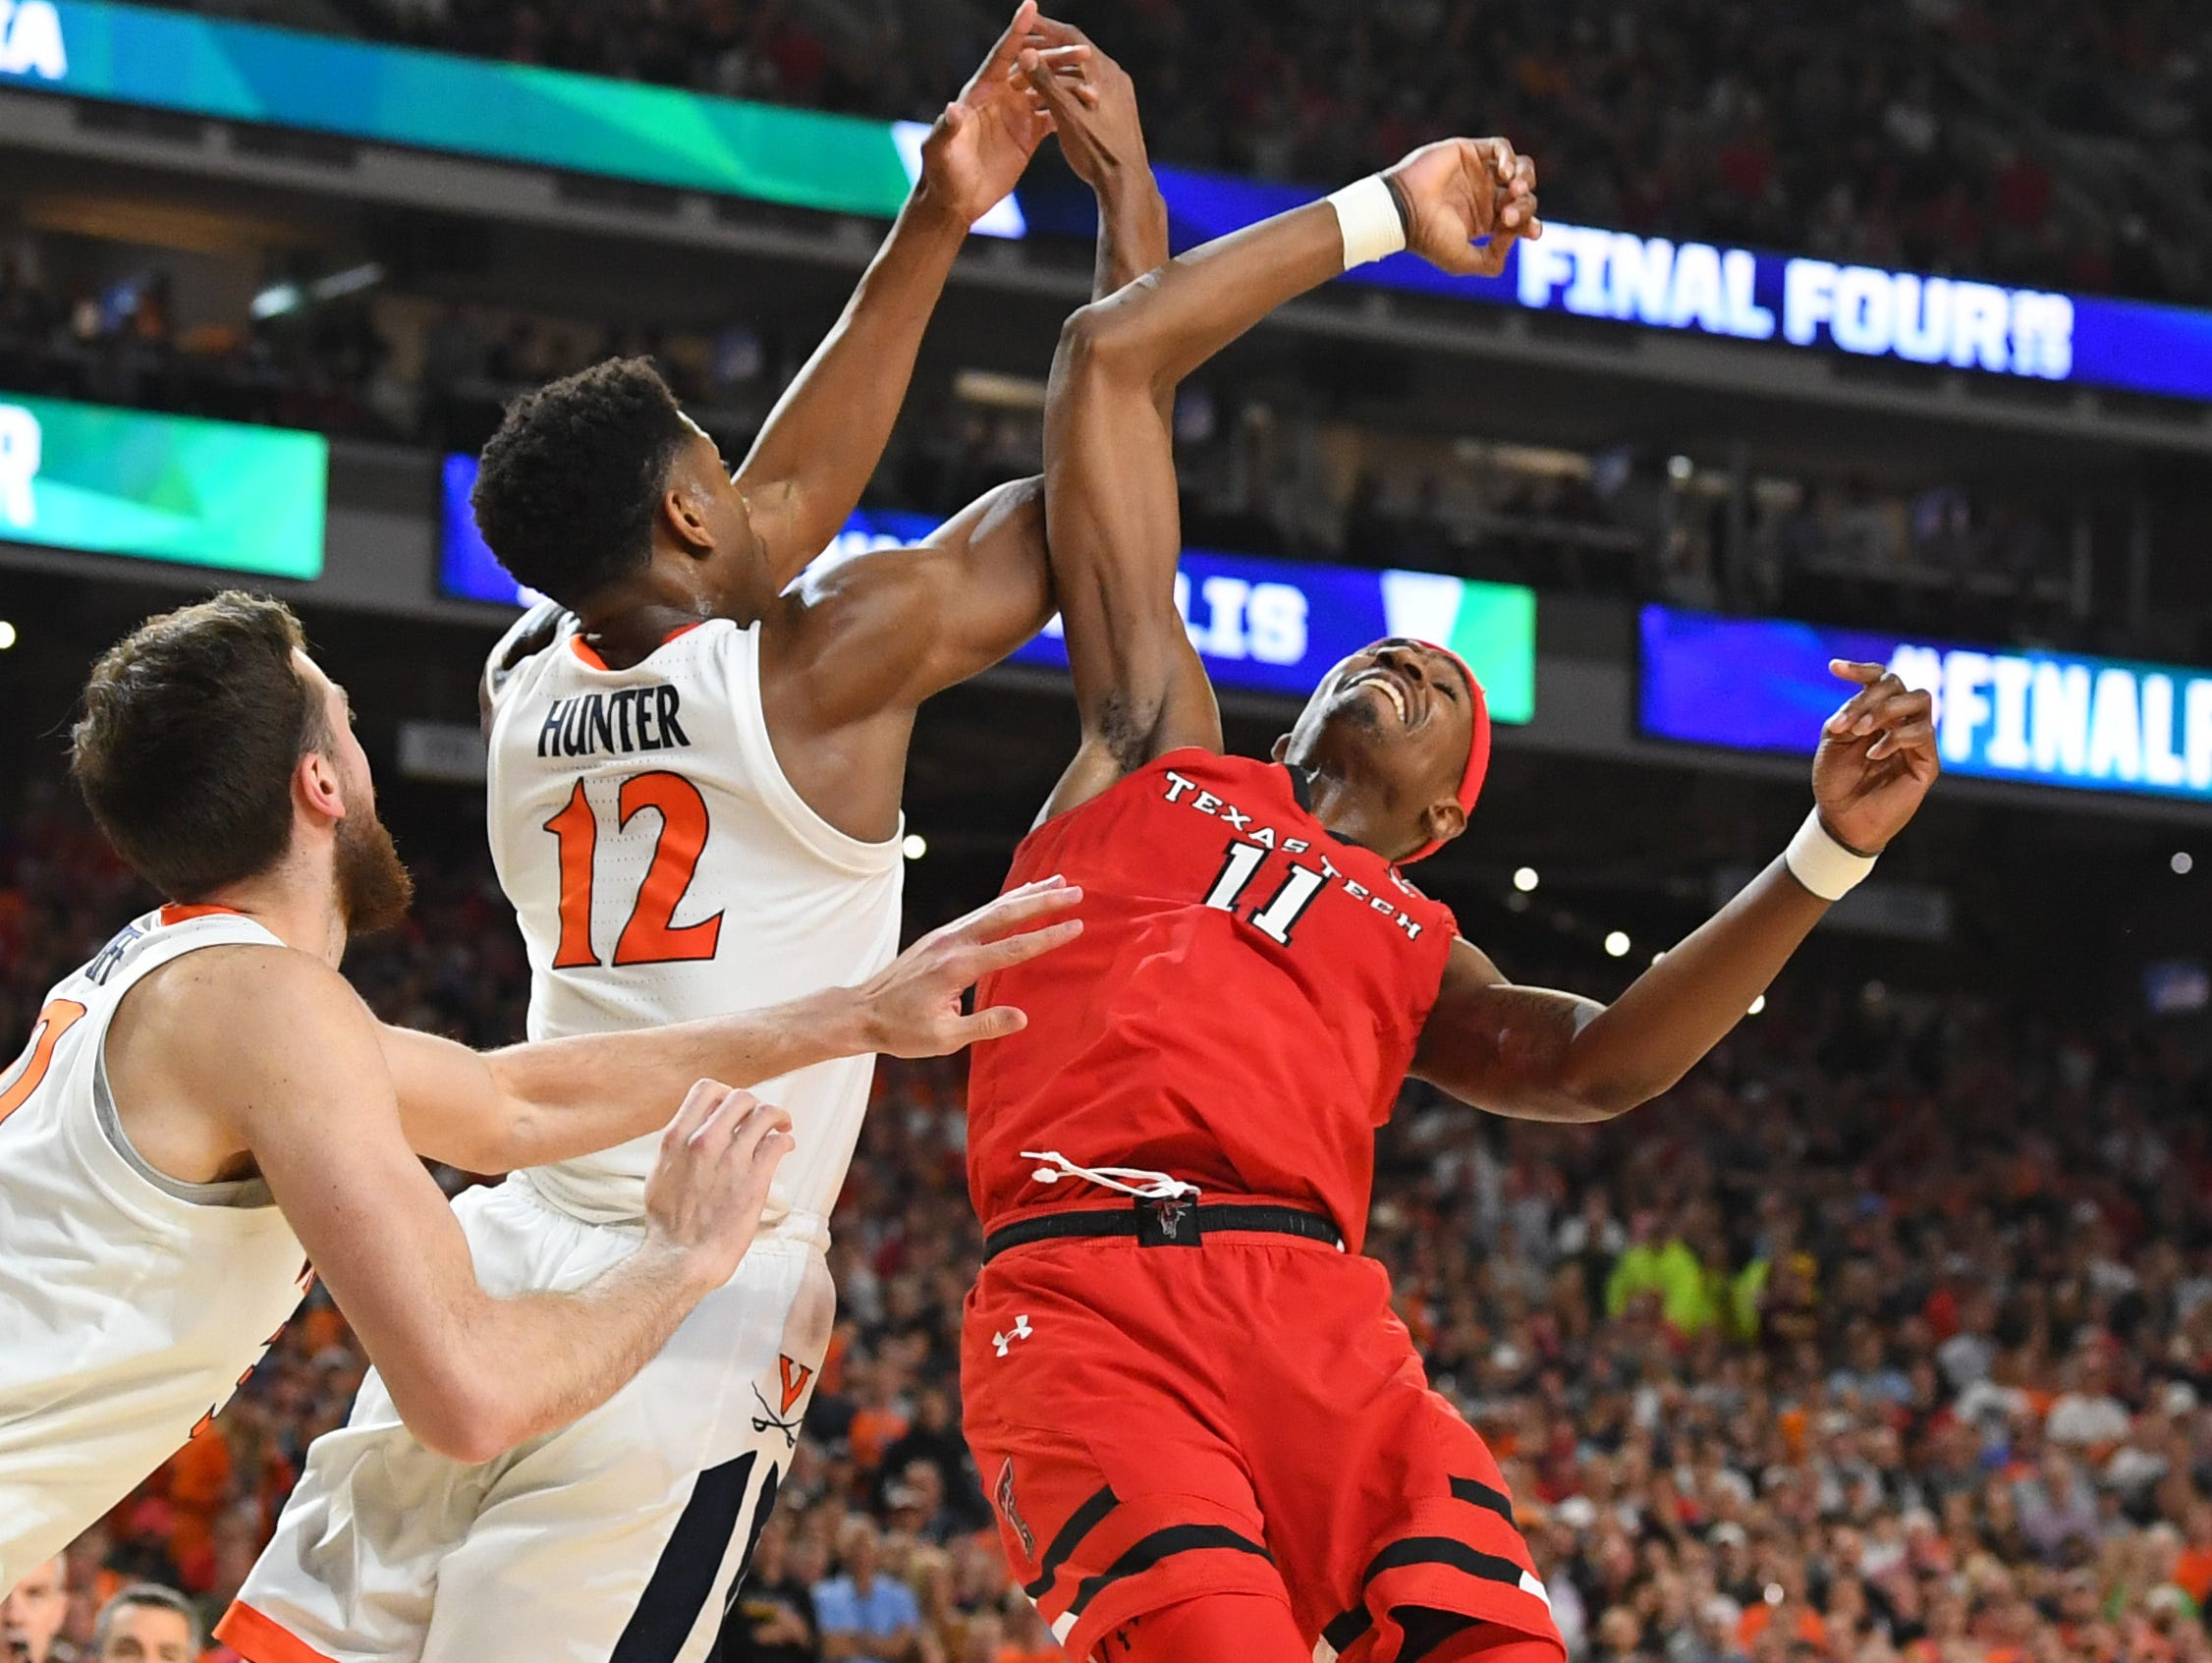 Apr 8, 2019; Minneapolis, MN, USA; Virginia Cavaliers guard De'Andre Hunter (12) and Texas Tech Red Raiders forward Tariq Owens (11) battle for a loose ball in the championship game of the 2019 men's Final Four at US Bank Stadium. Mandatory Credit: Robert Deutsch-USA TODAY Sports